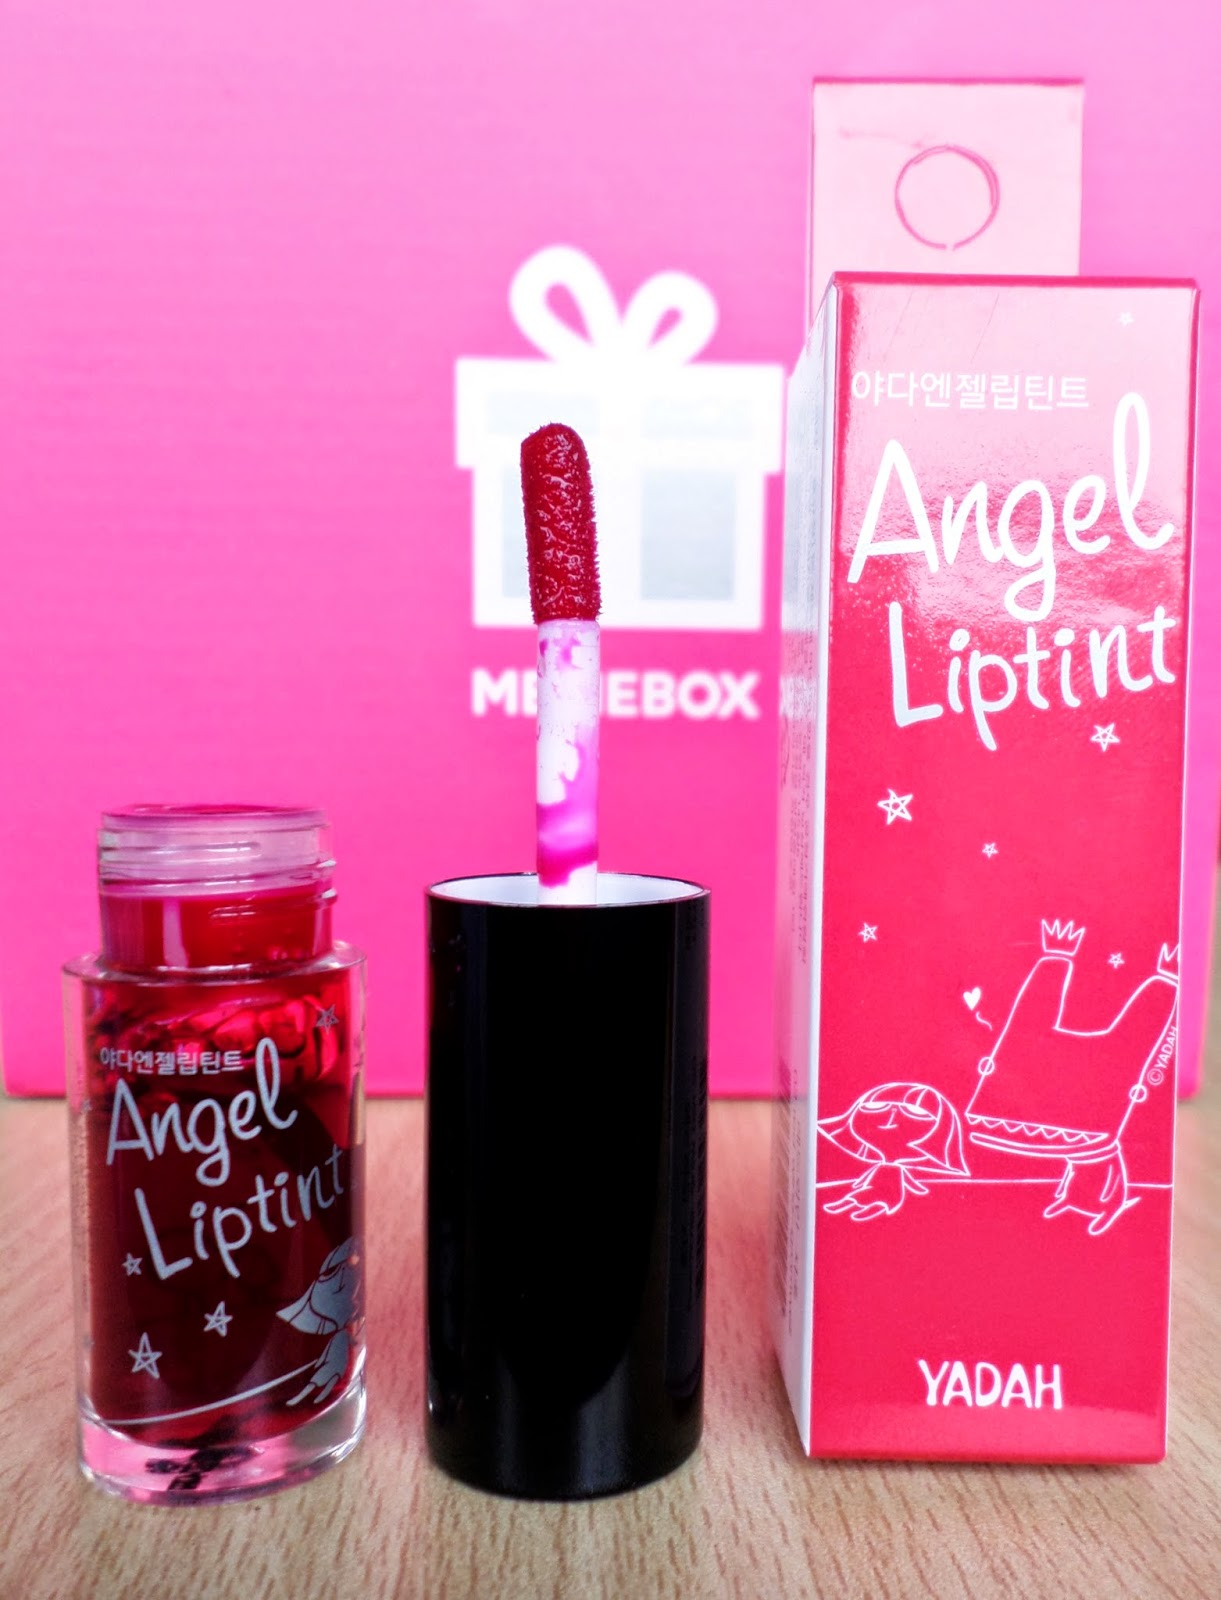 YADAH Angel Lip Tint 02 Red-Wine Gromwell 24g rrp $8